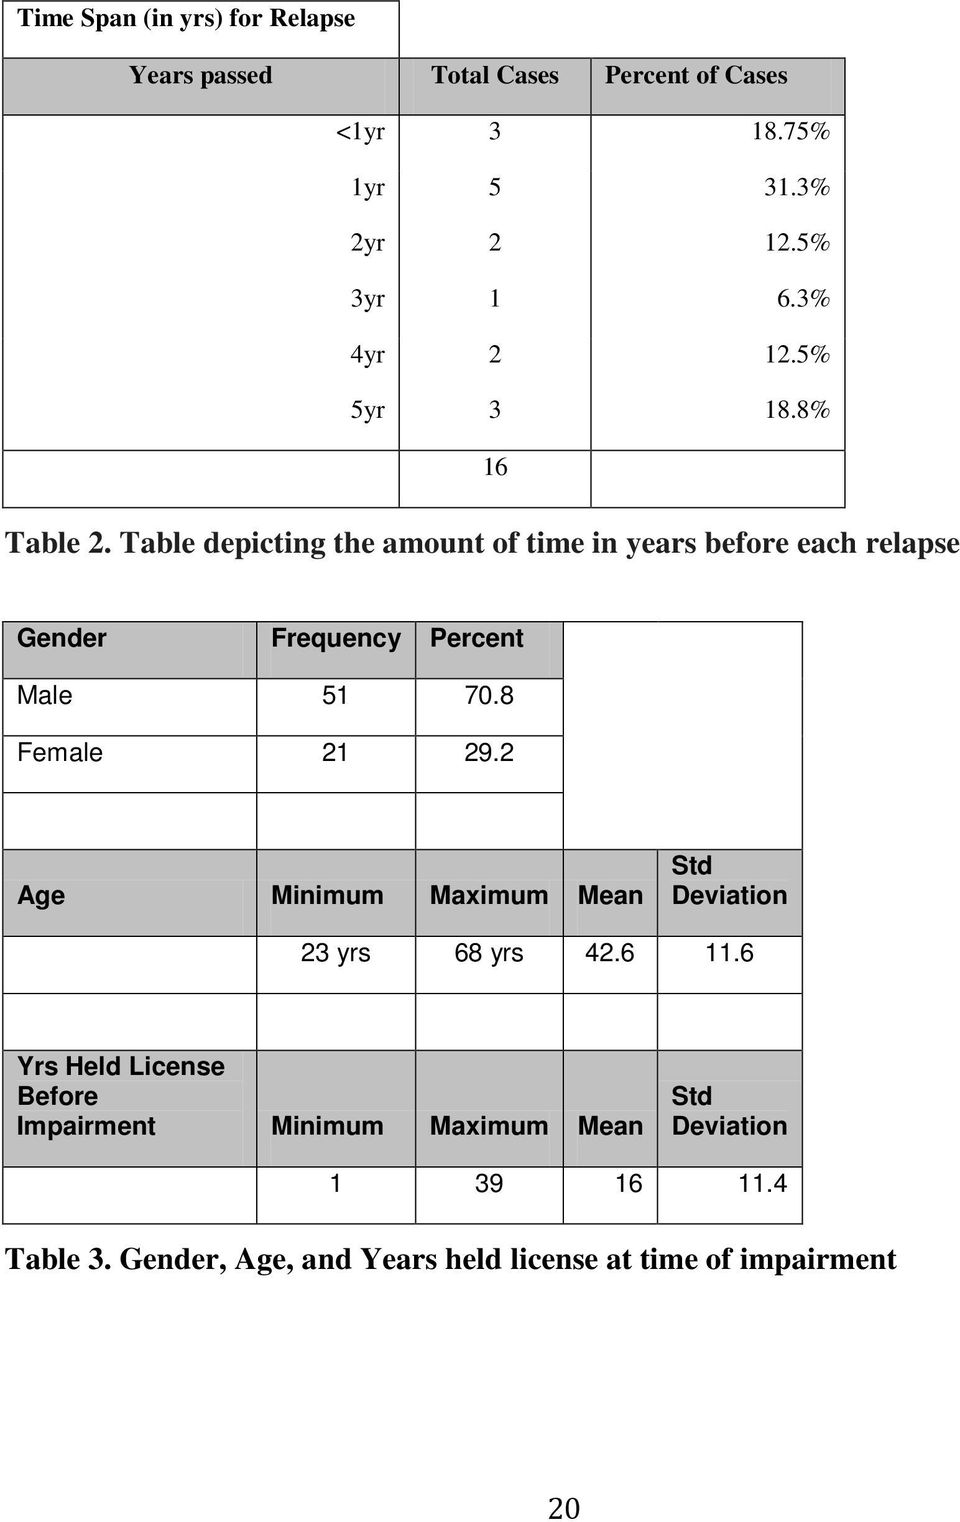 Table depicting the amount of time in years before each relapse Gender Frequency Percent Male 51 70.8 Female 21 29.